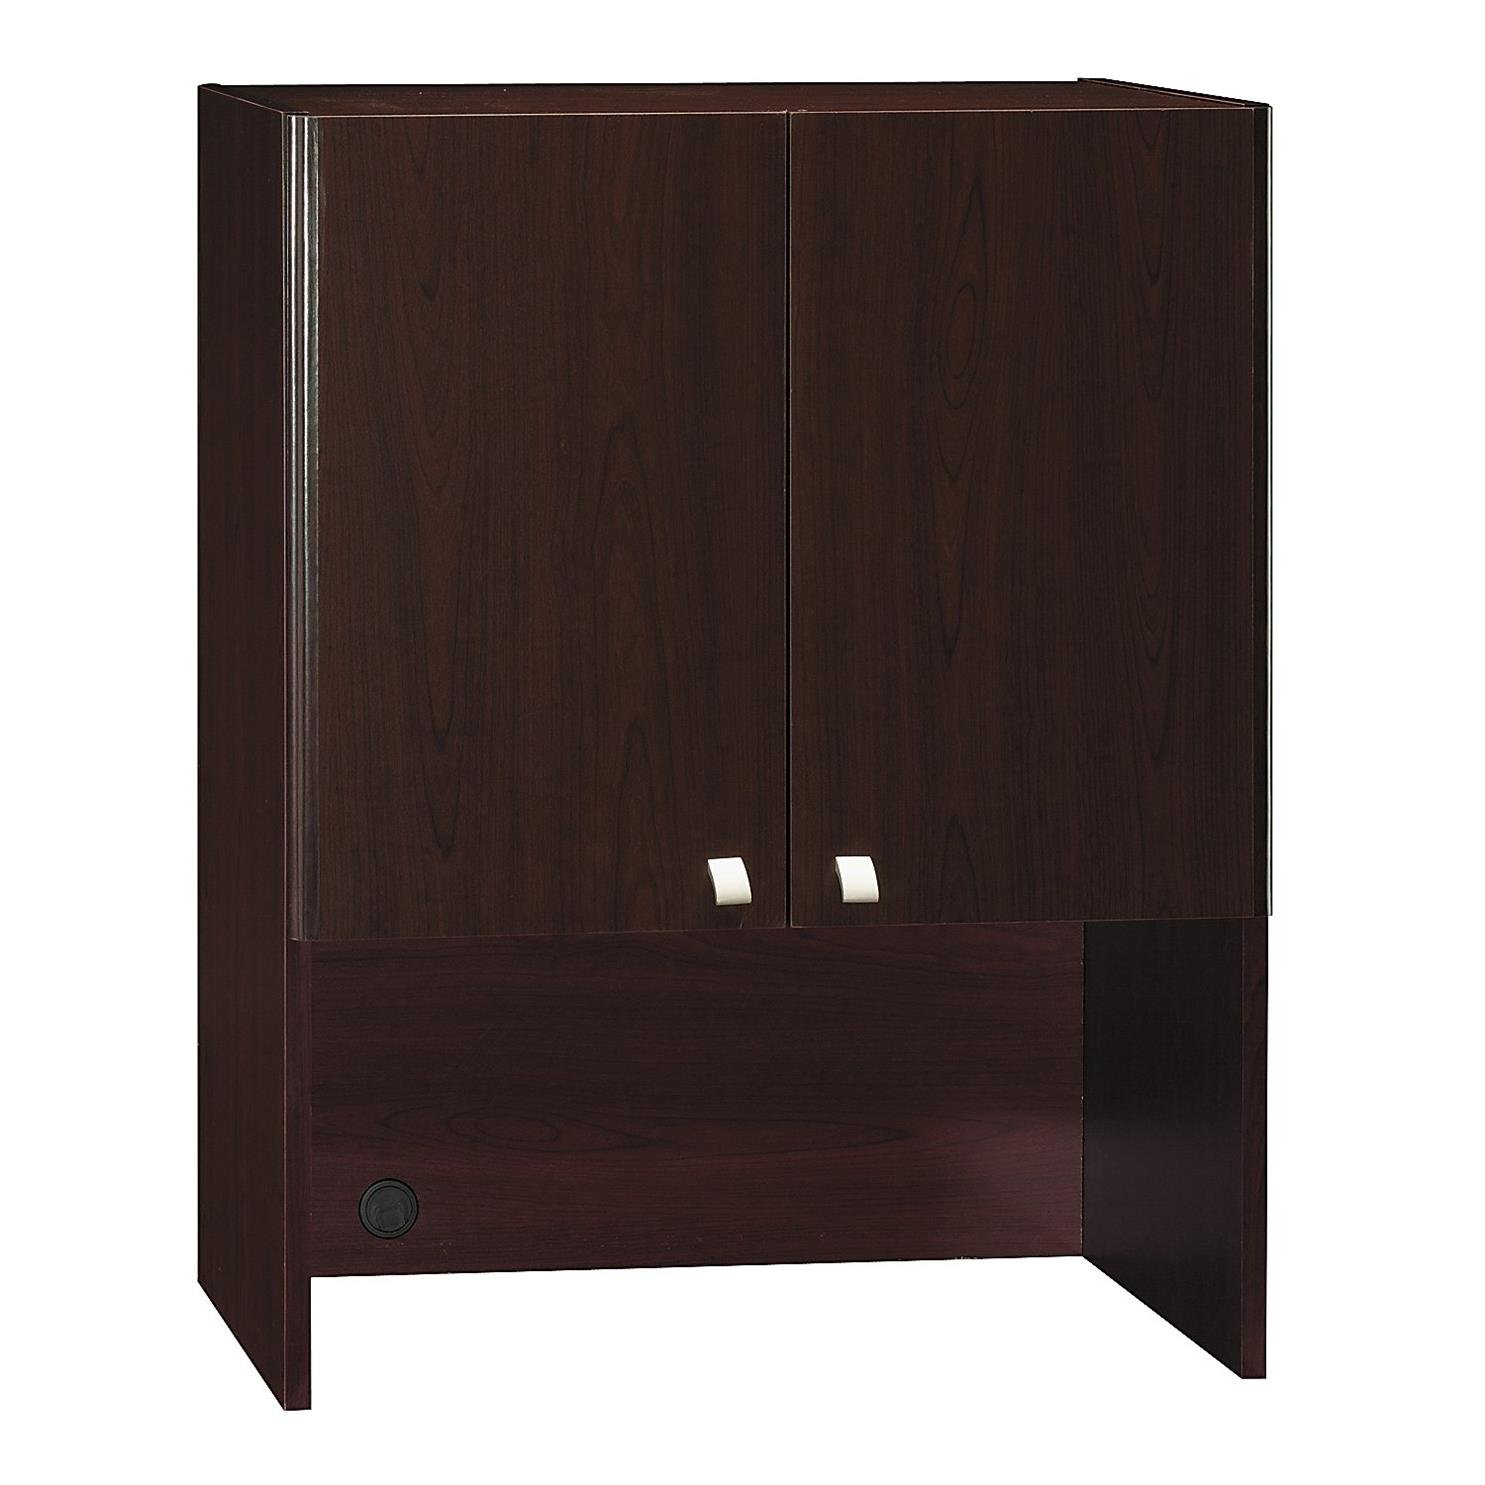 QUANTUM 30-inch STORAGE HUTCH